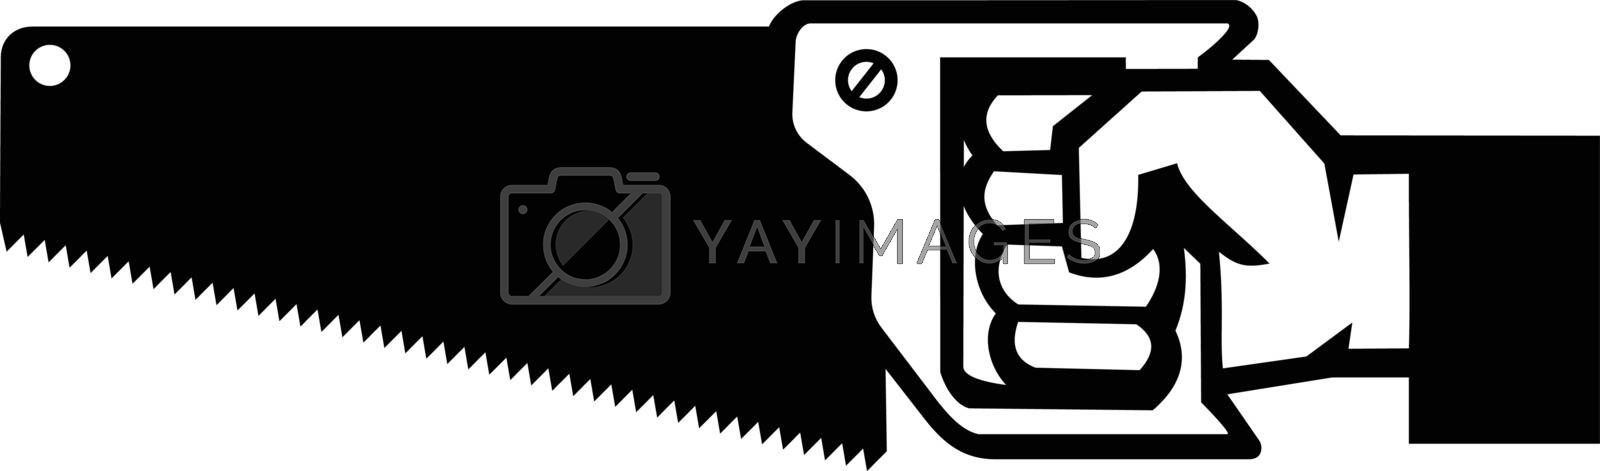 Black and White Illustration of an American carpenter, handyman or construction worker hand holding a crosscut saw viewed from side on isolated white background done in retro style.